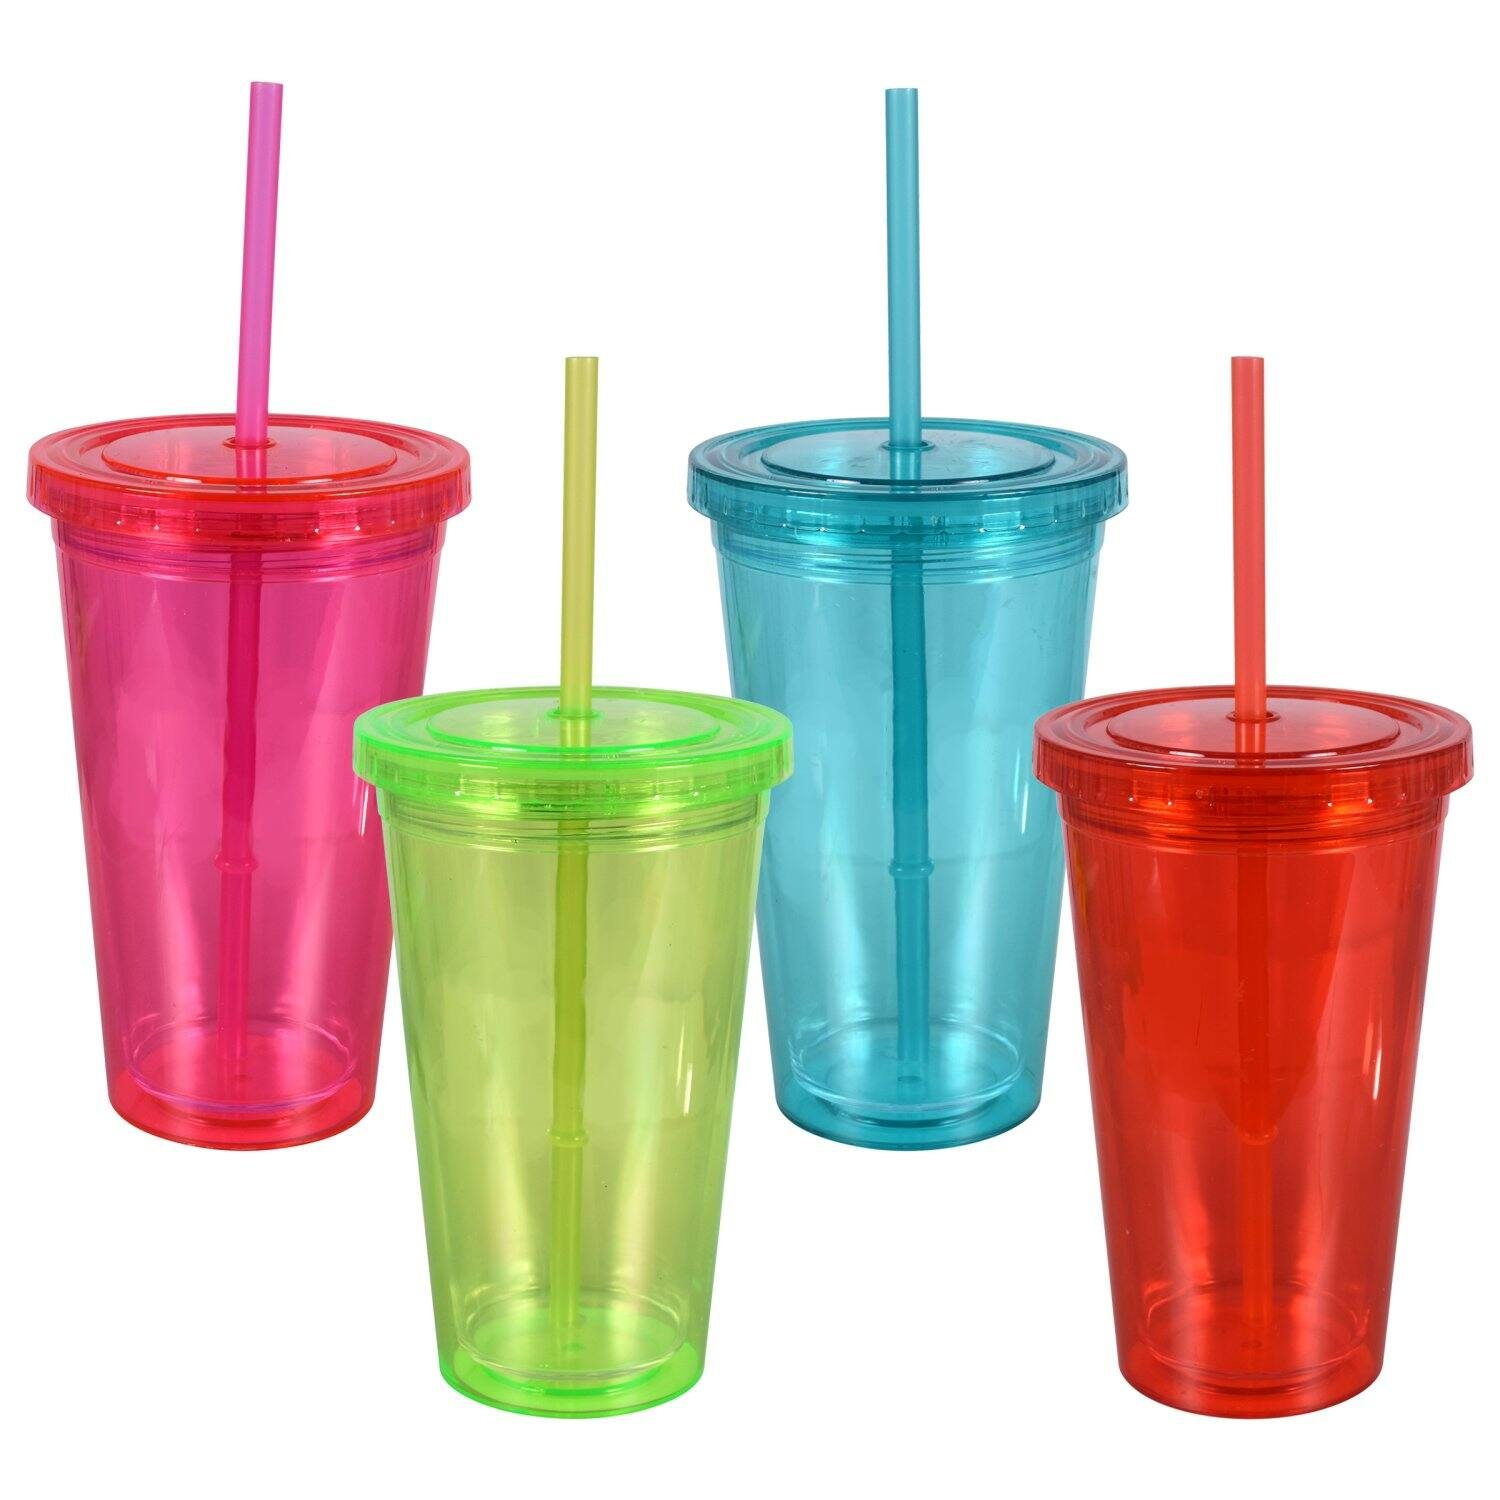 Double-Wall Translucent Plastic Tumblers with Lids and Straws, 16 oz.